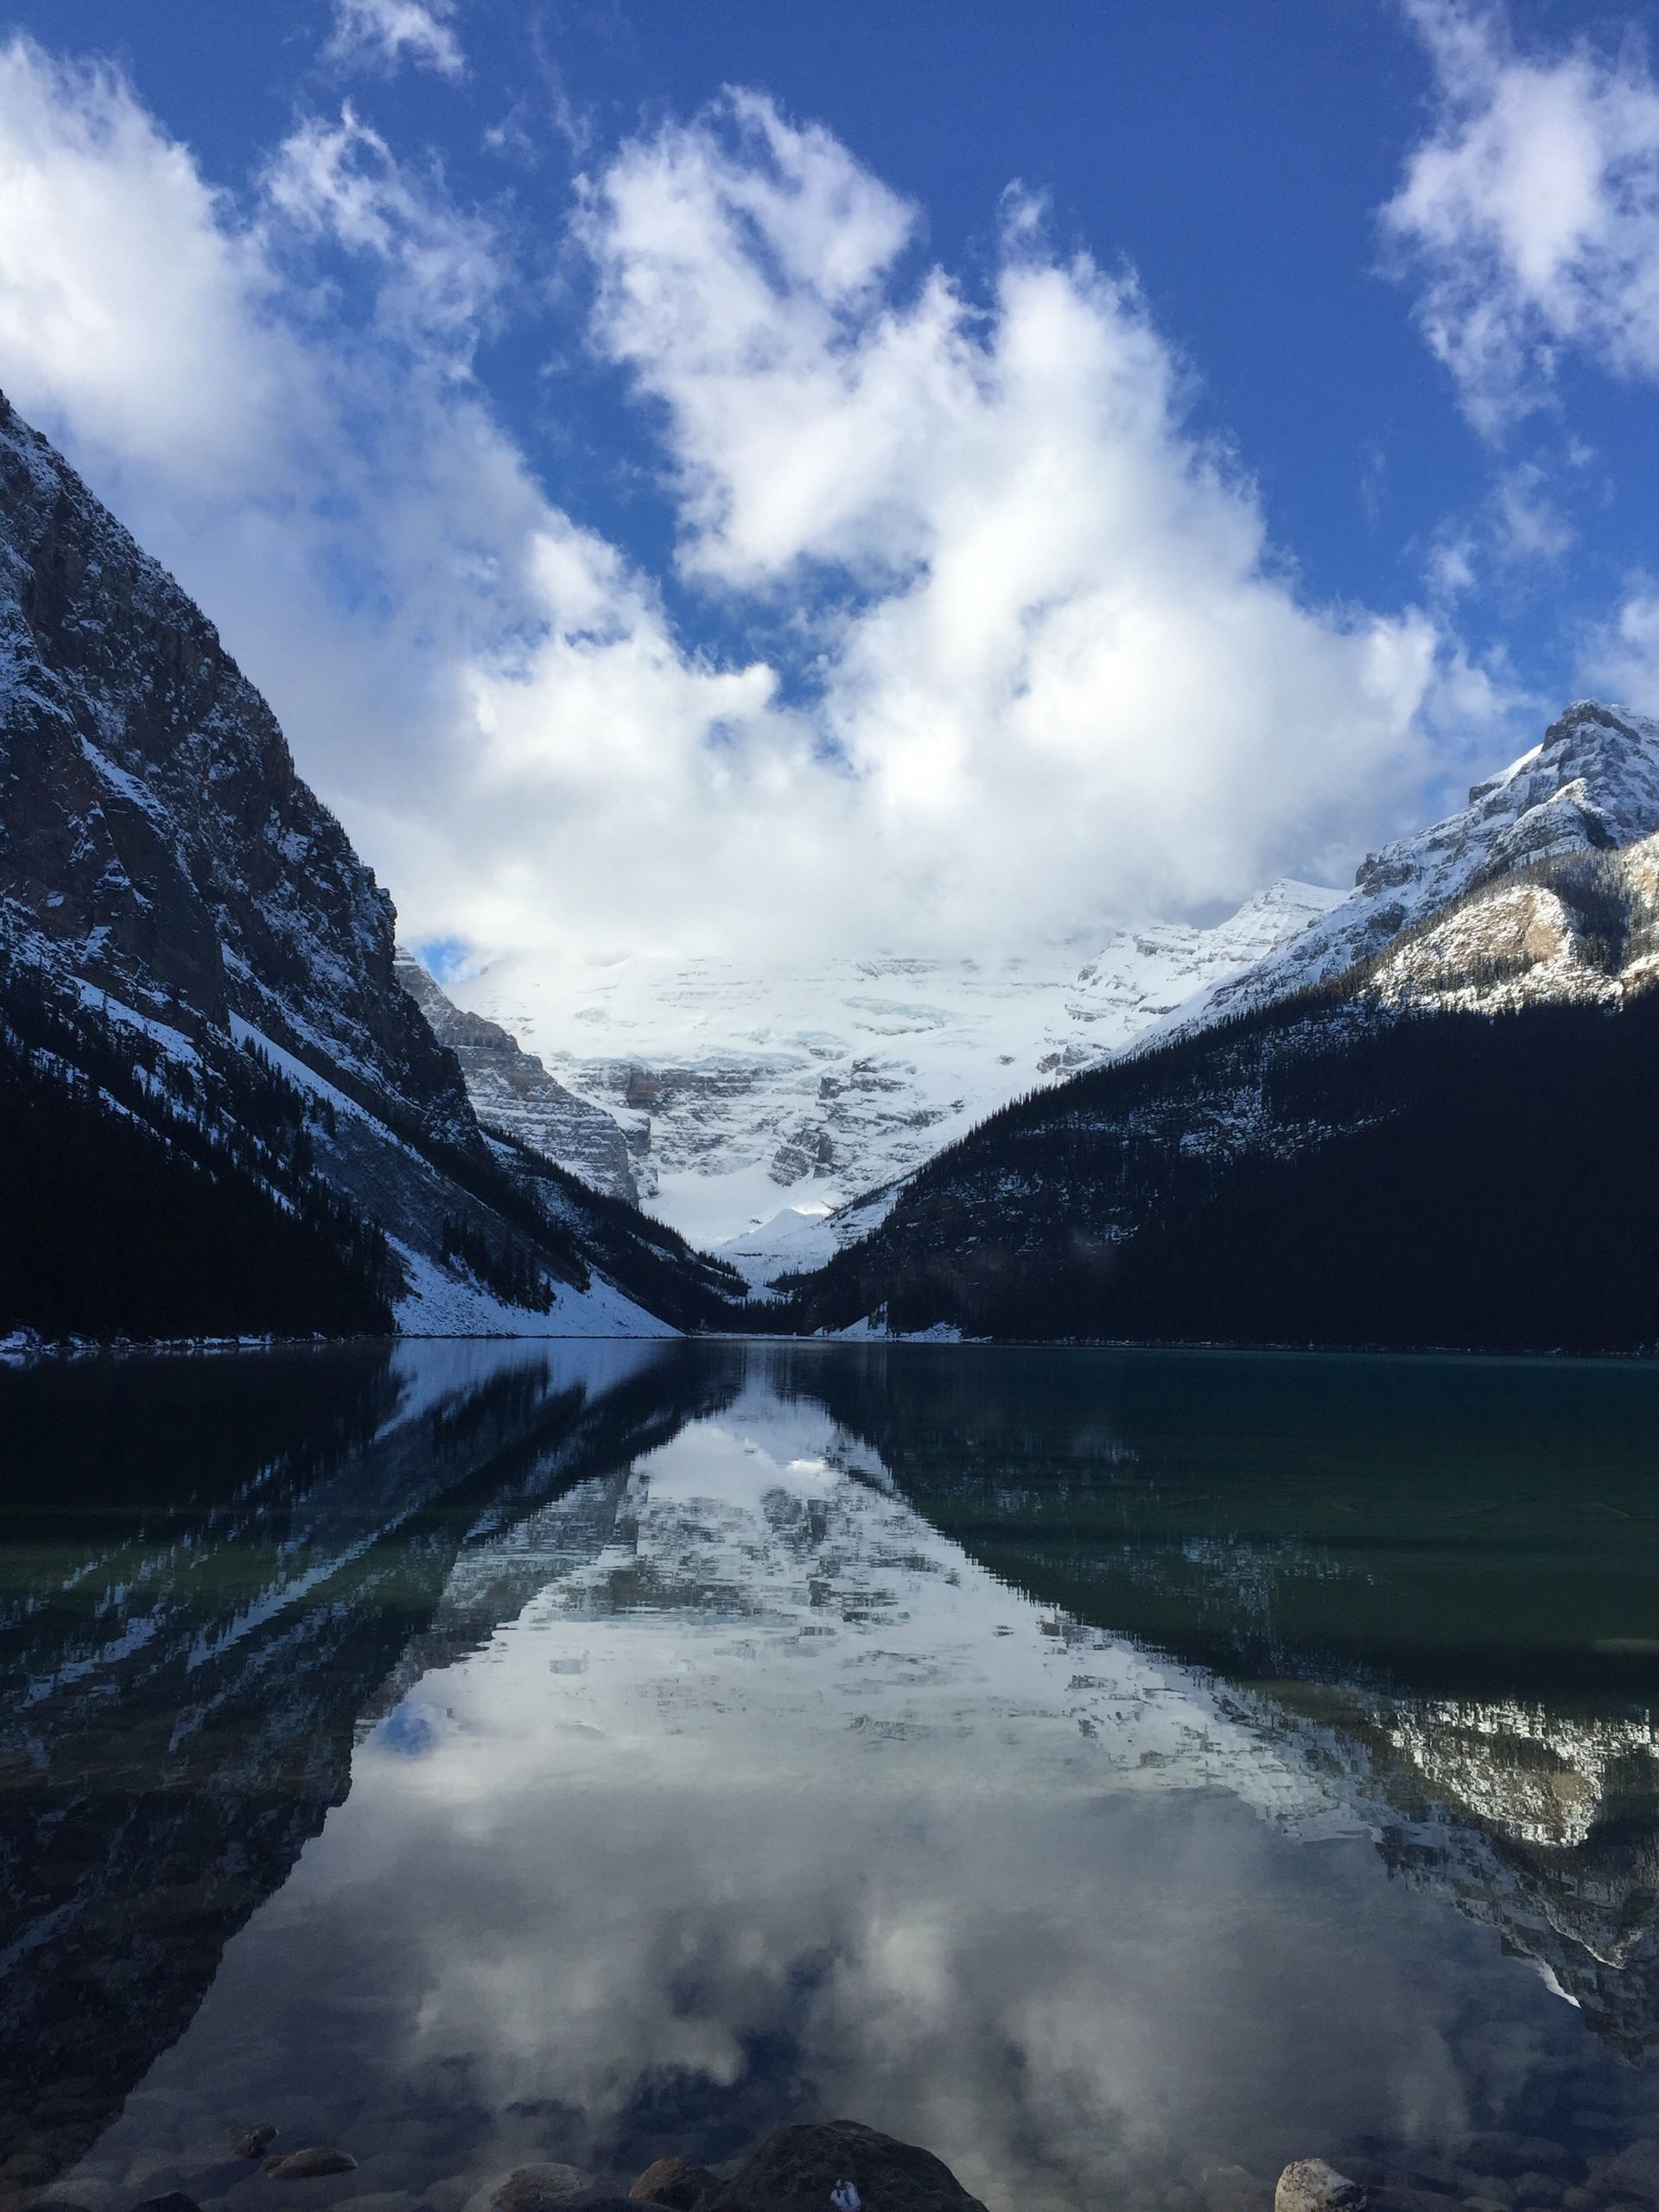 Clouds reflection on lake | mountain, snow, frozen, frost